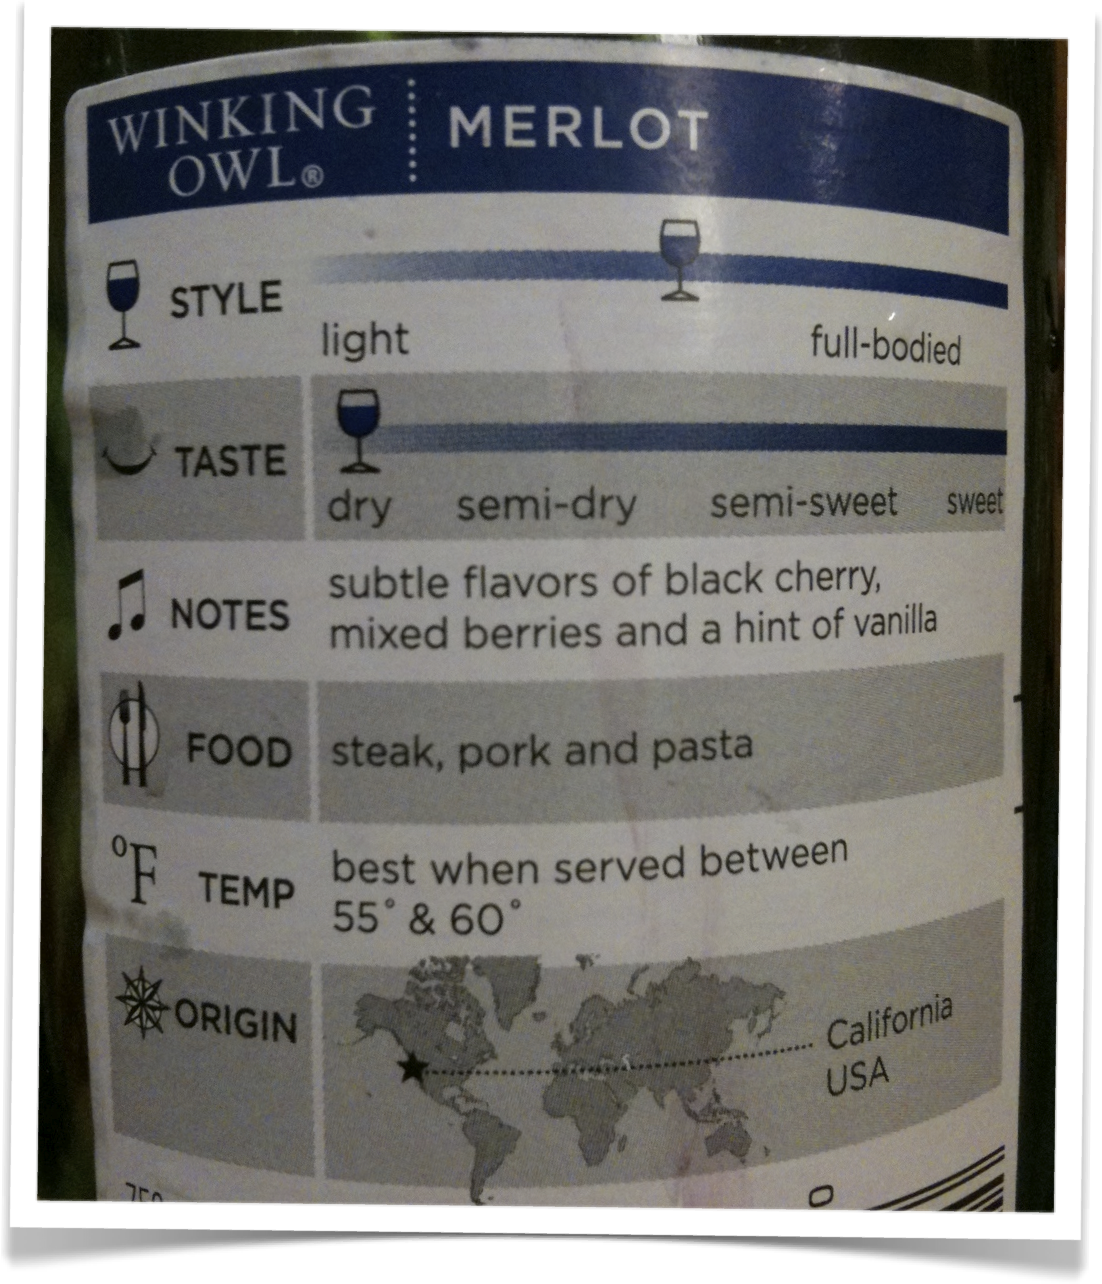 Viz-nerds like wine, too. (or is it: Wine-nerd like vis, too?)